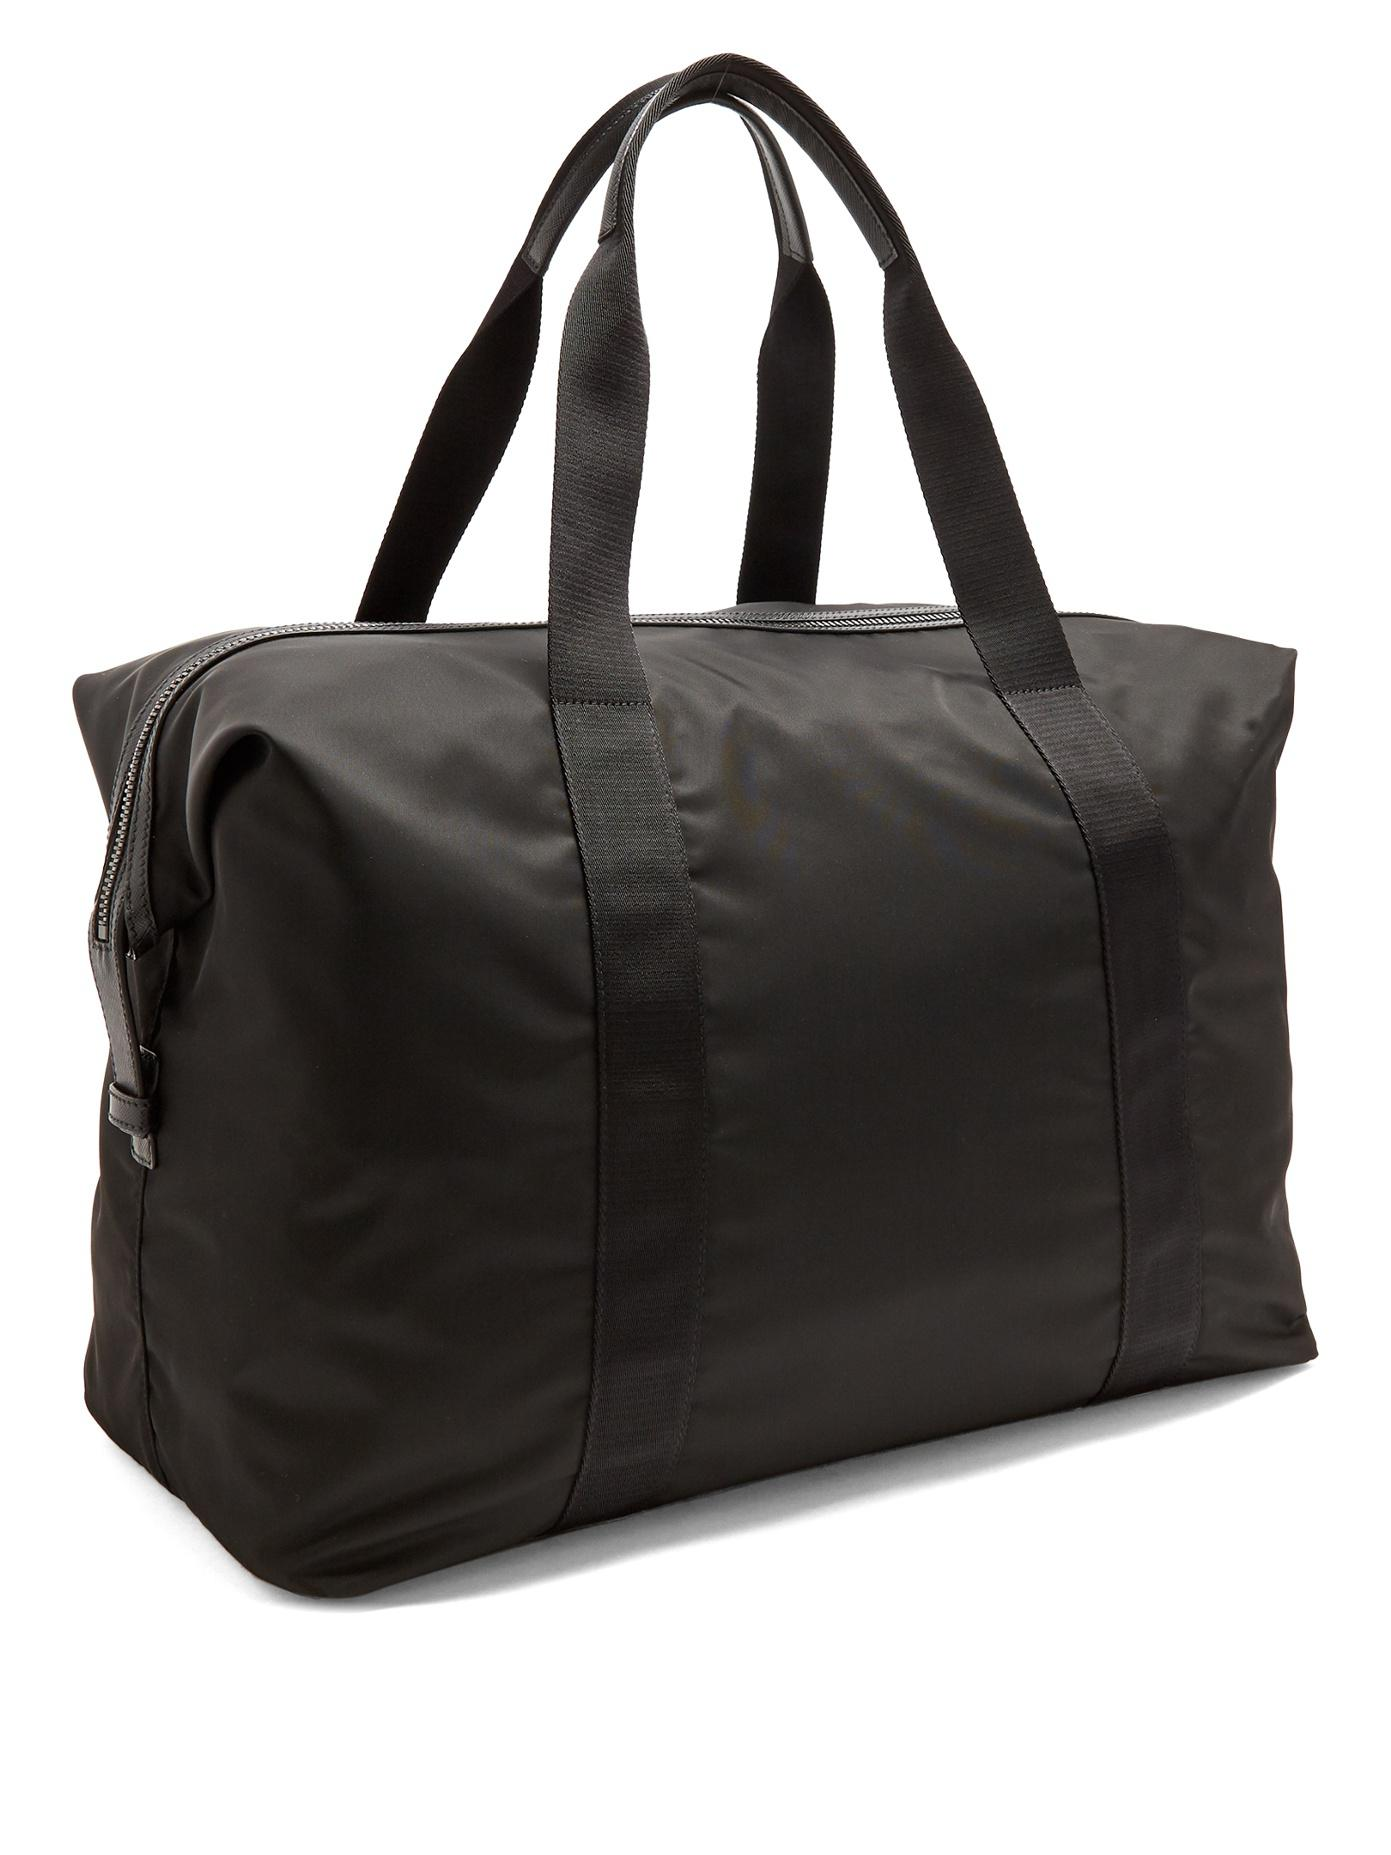 4092ebf11d1f ... inexpensive lyst prada top handle nylon weekend bag in black for men  71e66 d1836